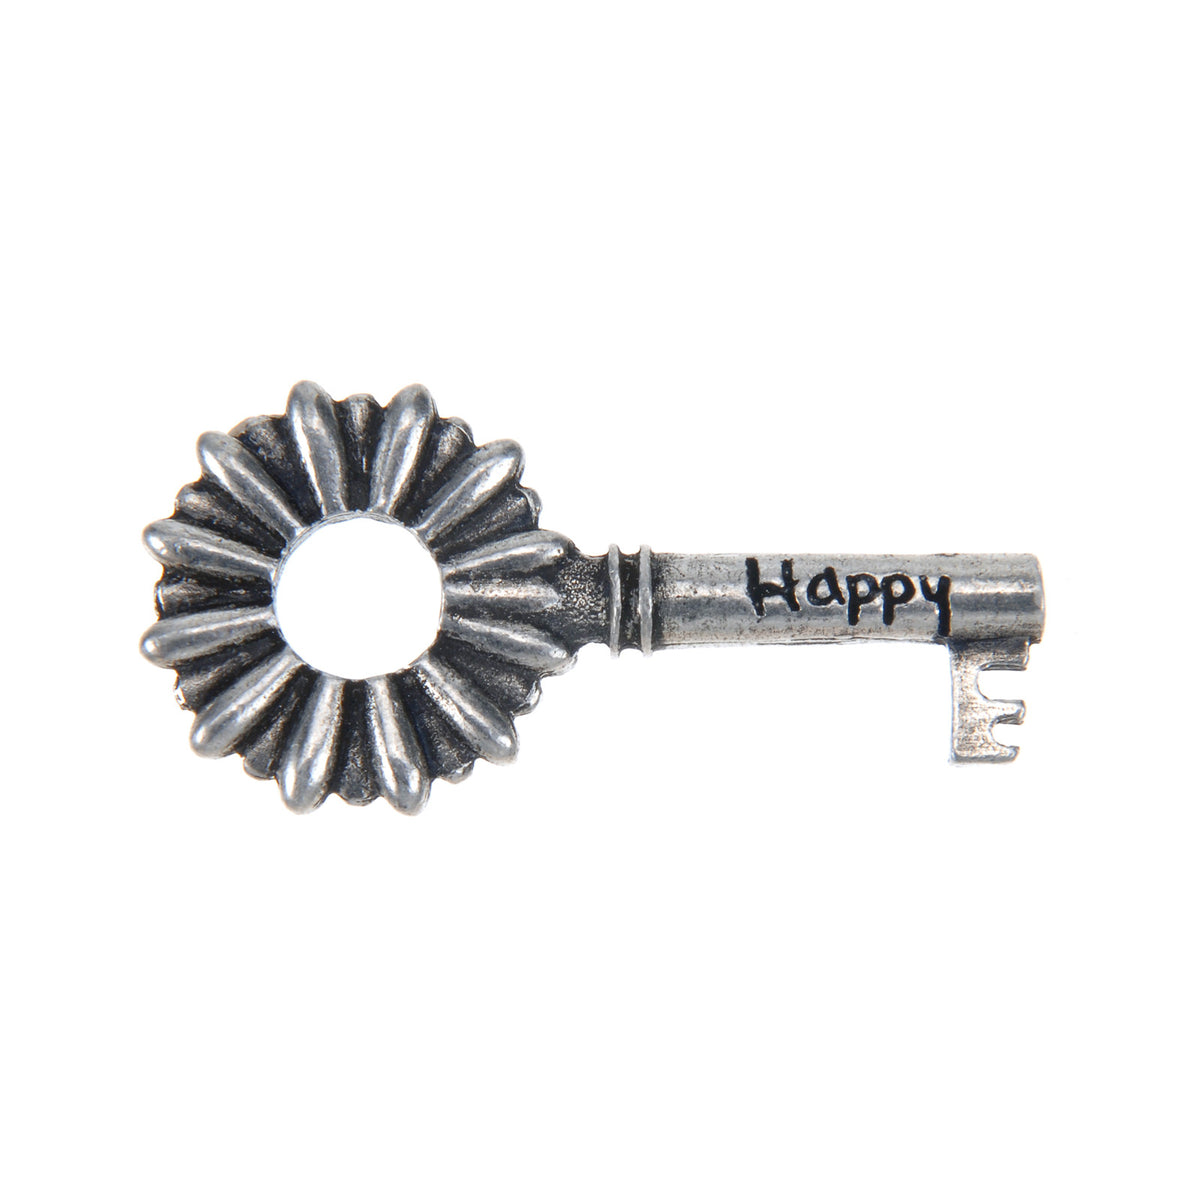 Happy Key - Whitney Howard Designs